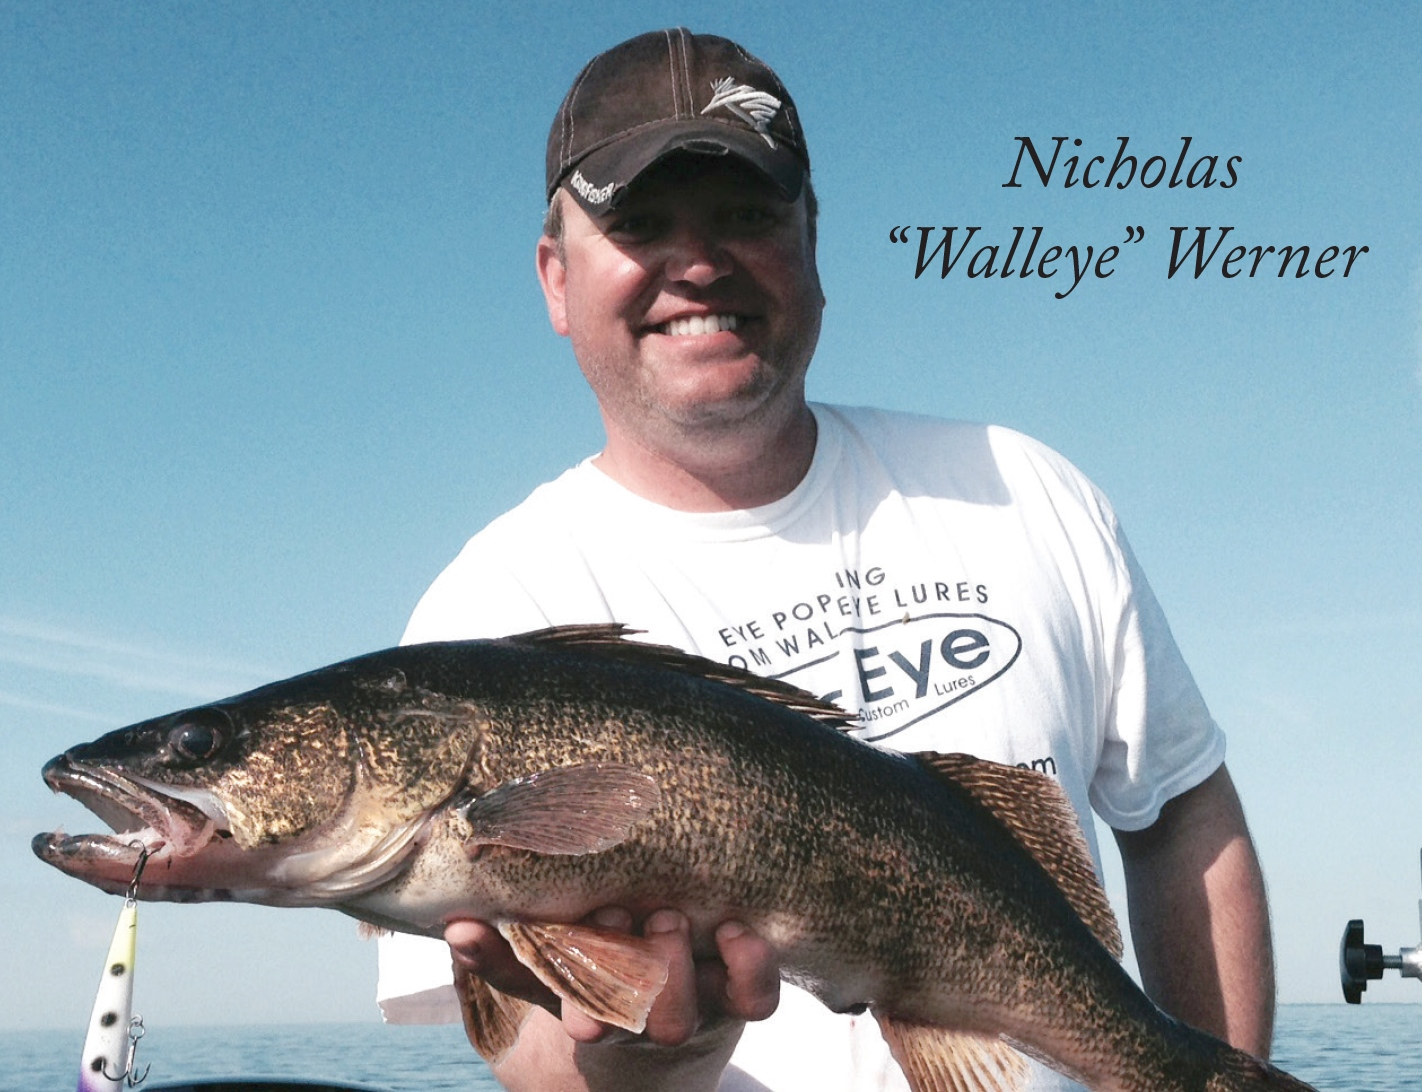 Walleye Werner